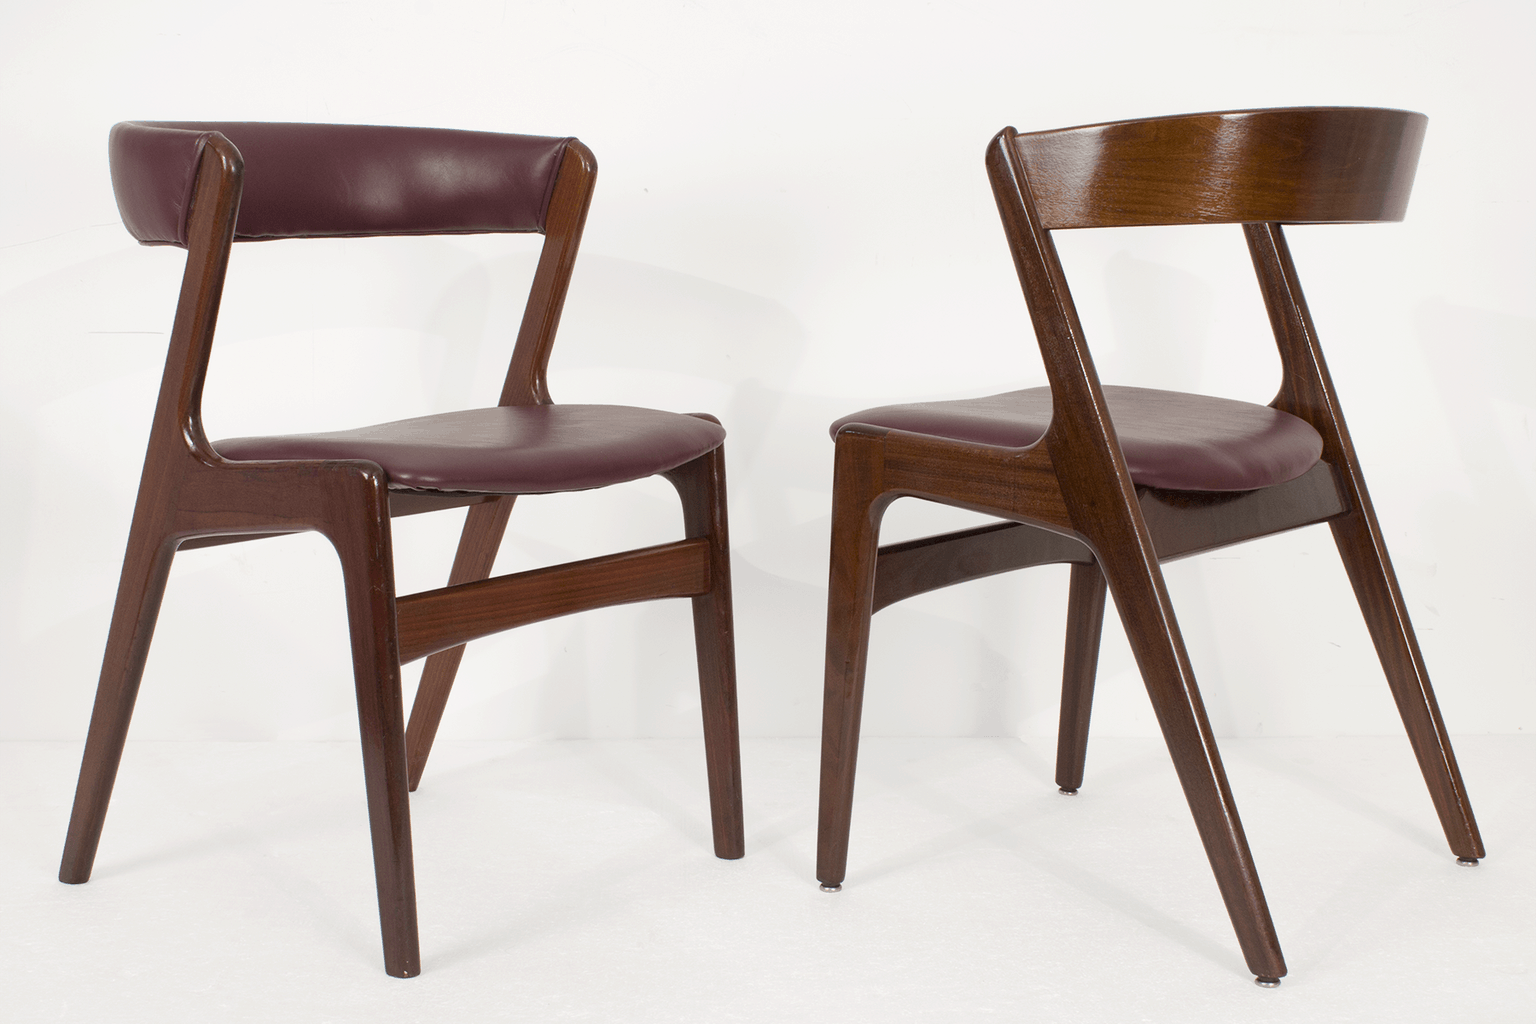 Kai Kristiansen Dining Room Chairs 6 Midmod Decor